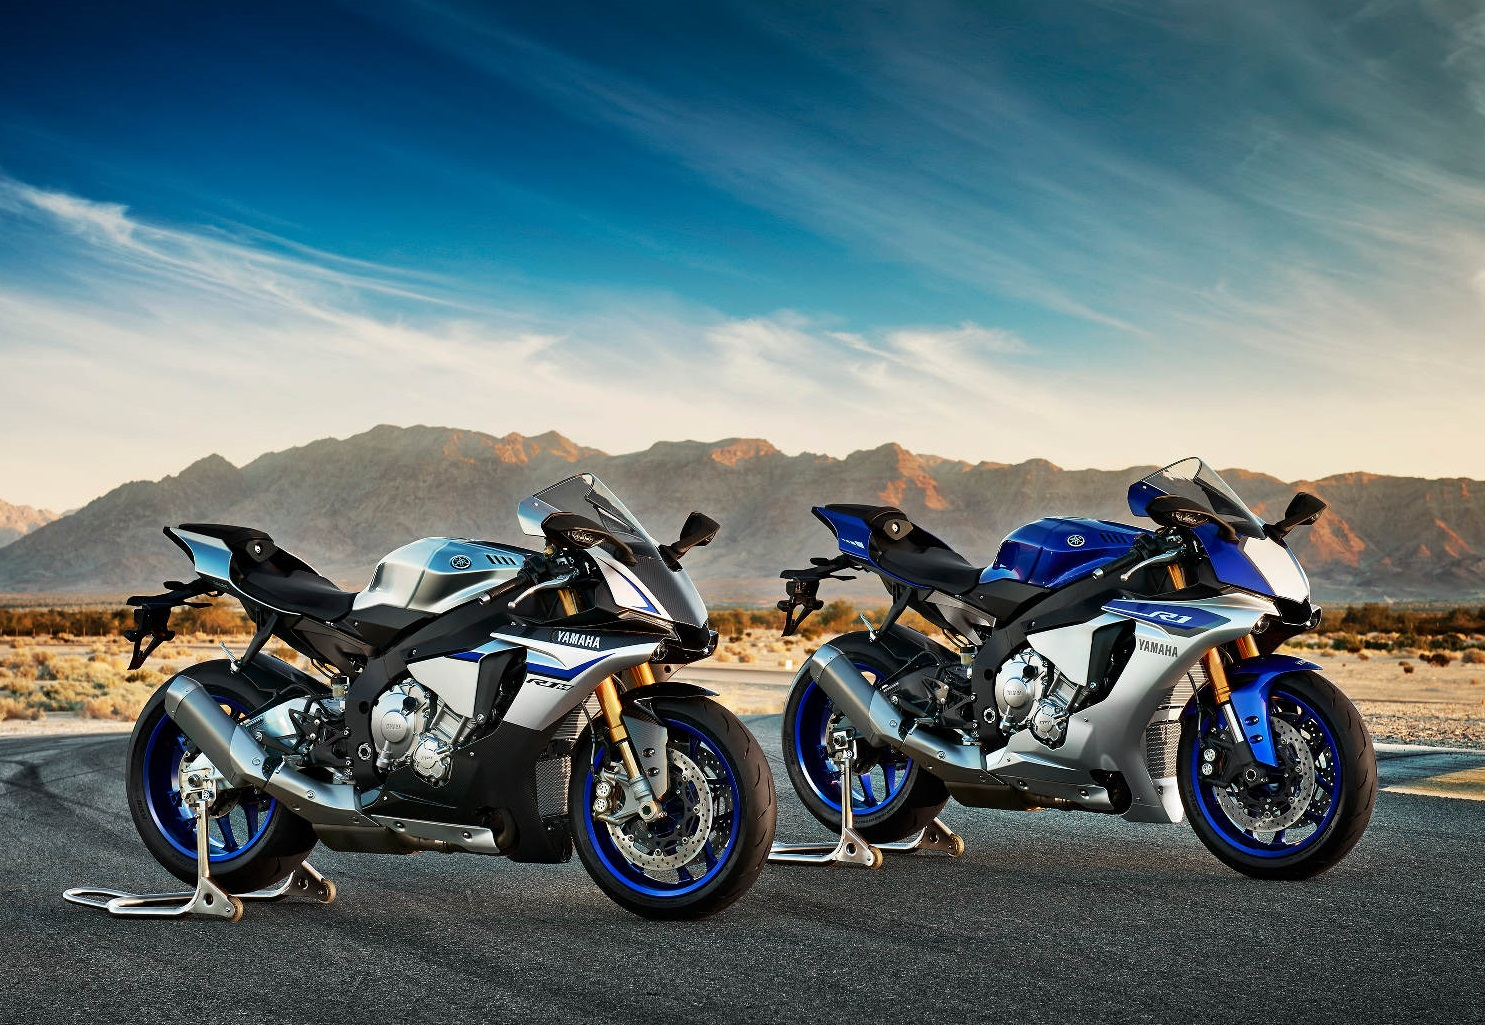 2015 Yamaha R1, R1M and MT-09 New Motorcycles